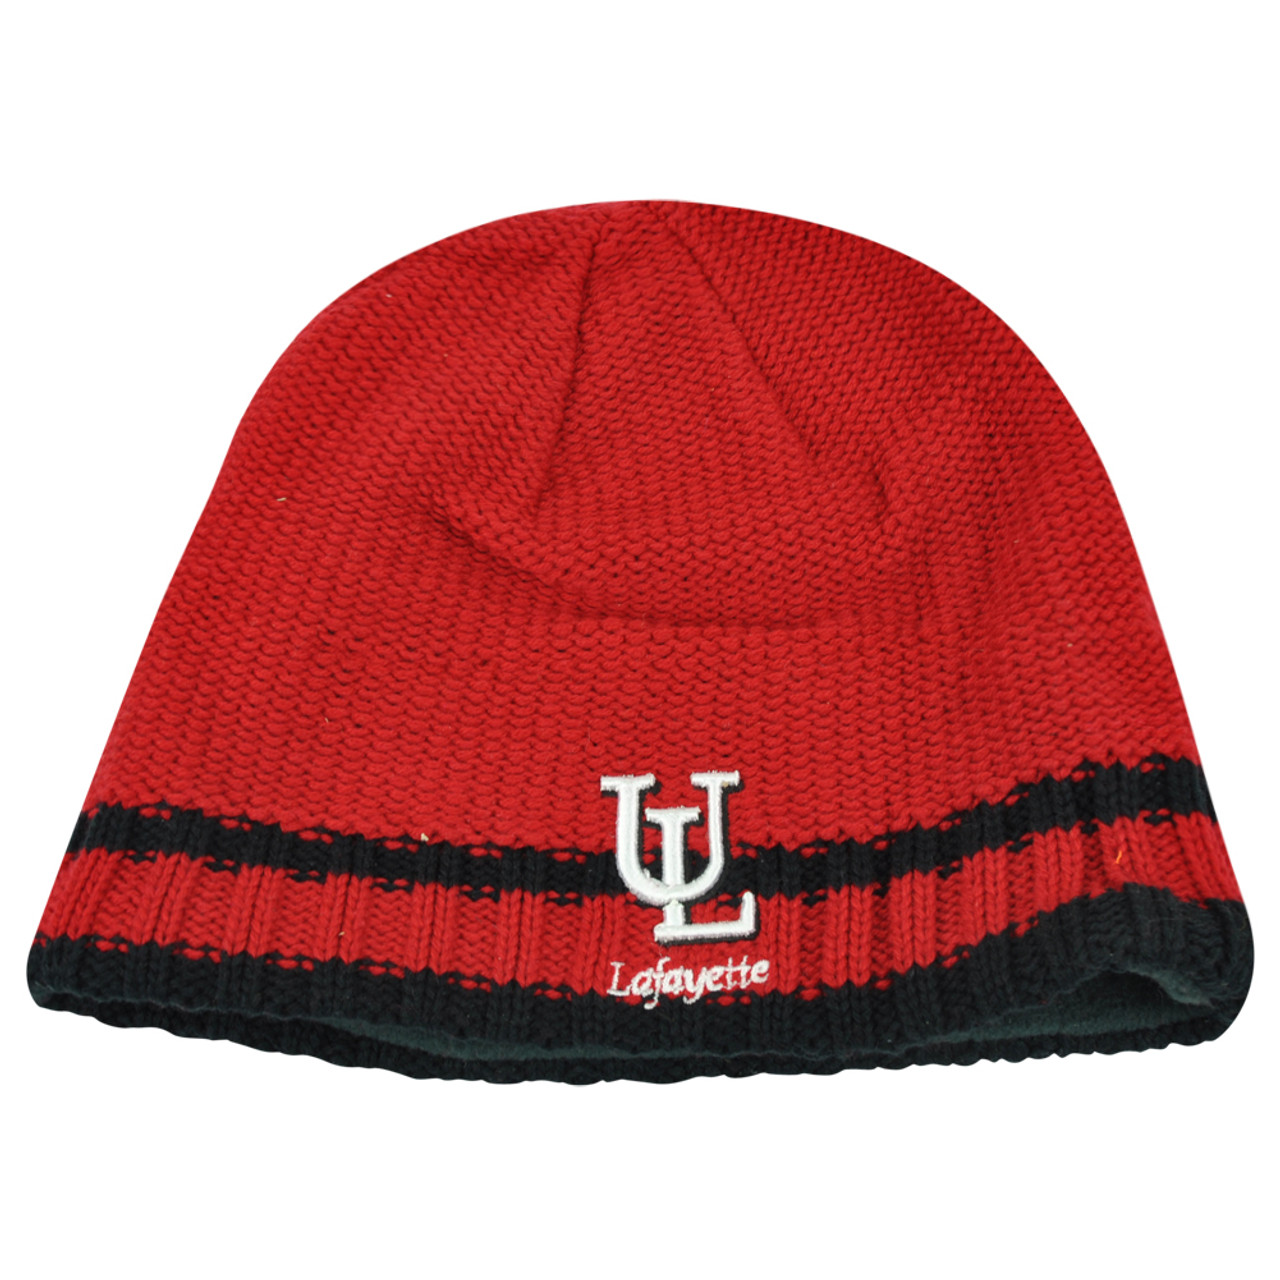 500972bd2db29 NCAA Lafayette Ragin Cajuns Striped Fleece Cuffless Knit Beanie Winter Hat  Toque - Cap Store Online.com